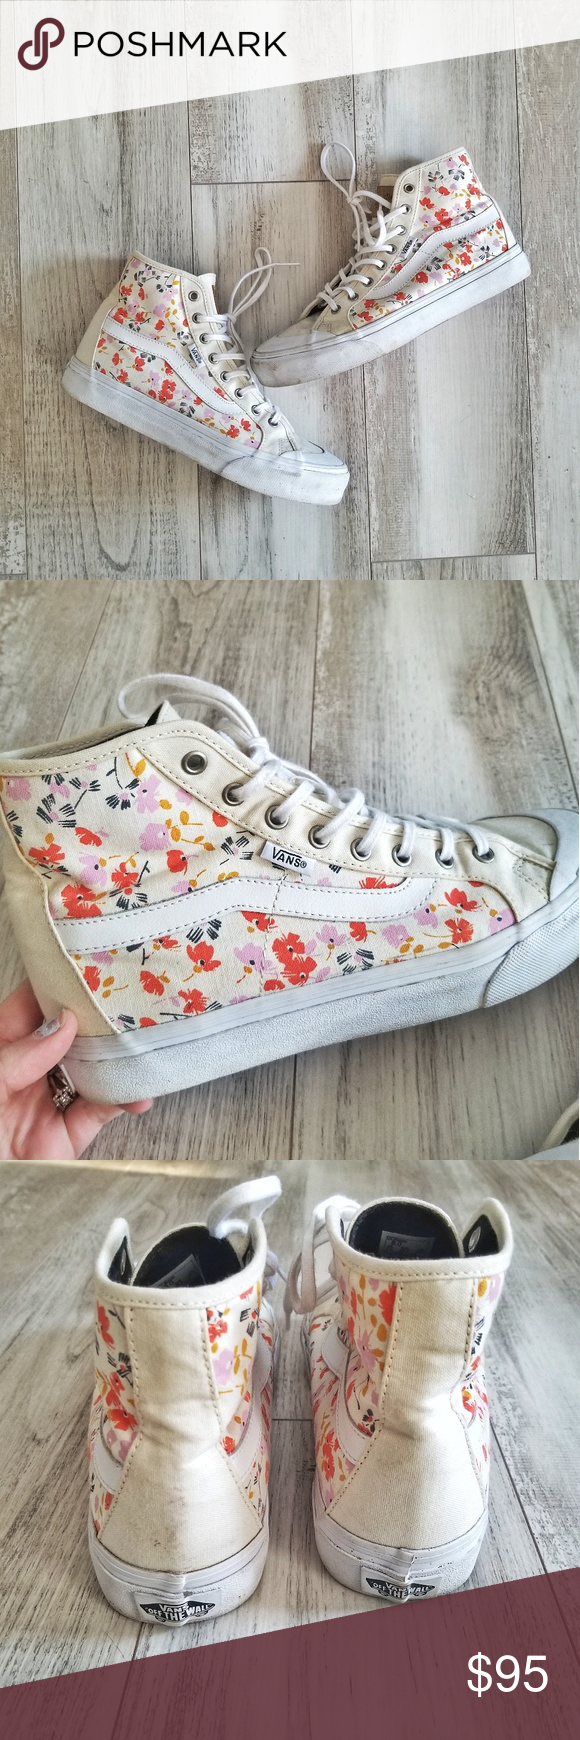 bd4e886580ab 50% closet sale!Limited edition Vans Leila Hurst l These Vans x Leila Hurst high  tops have a super cute floral print and comfy cushioned insoles.